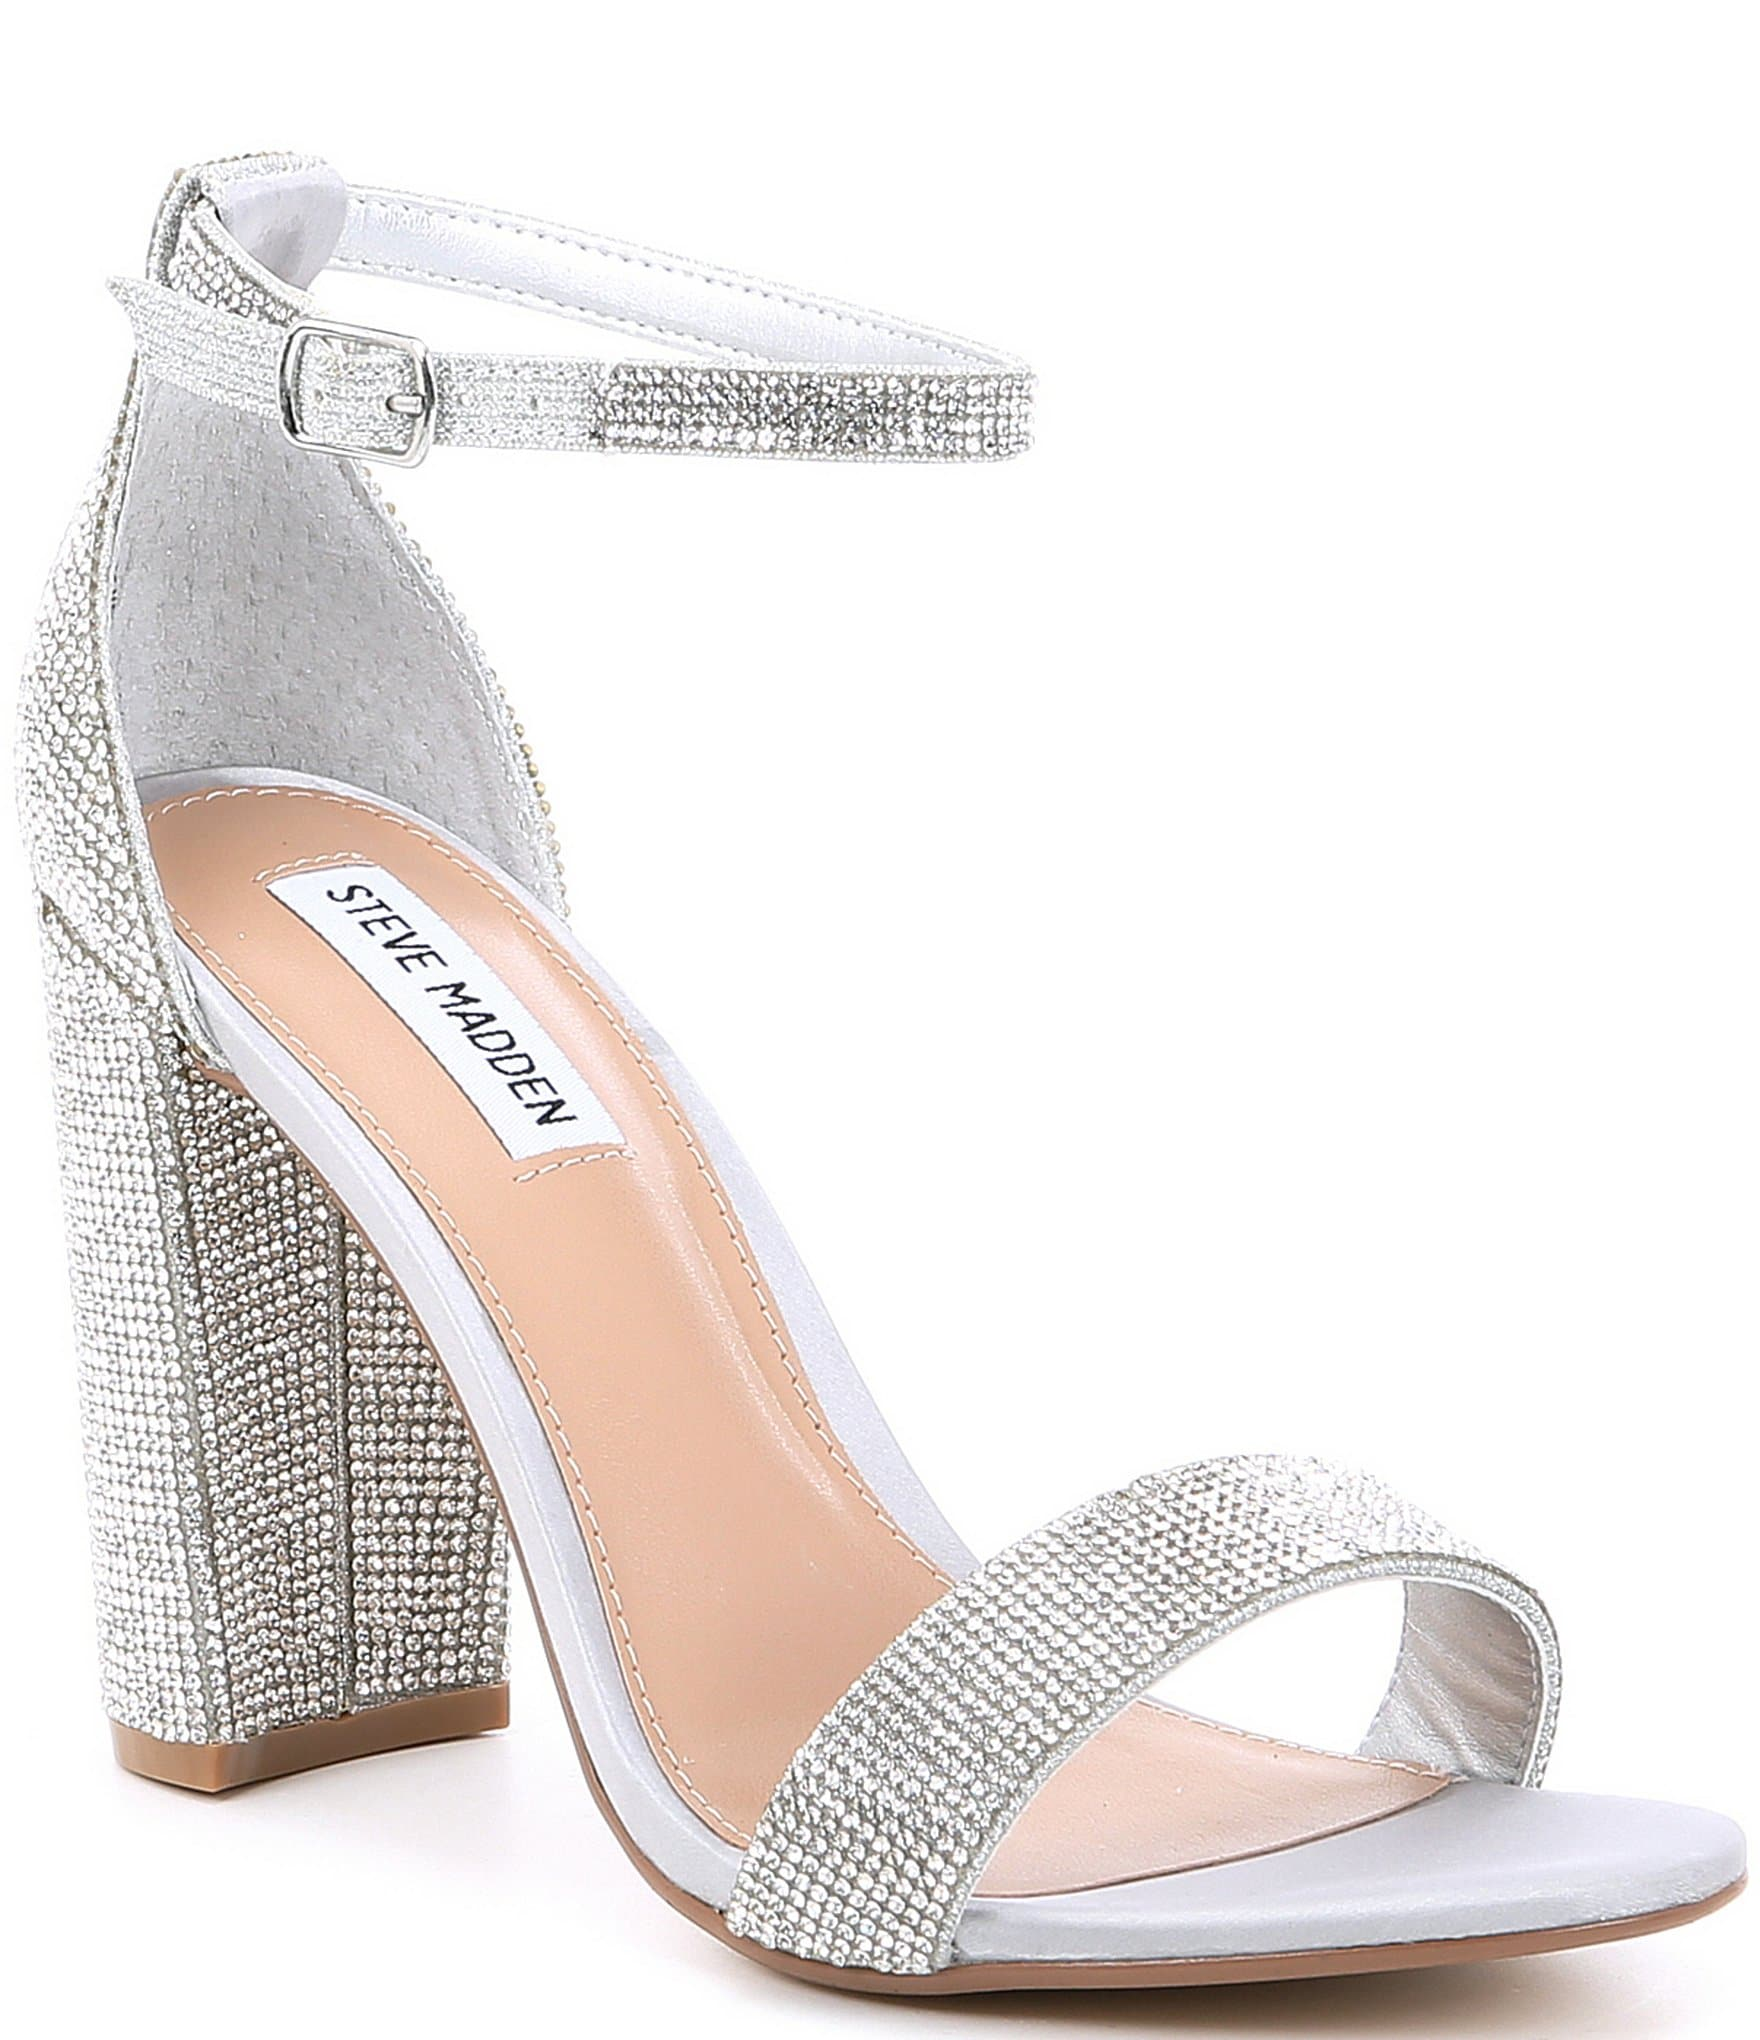 614aecd2372 Silver Steve Madden Shoes for Women